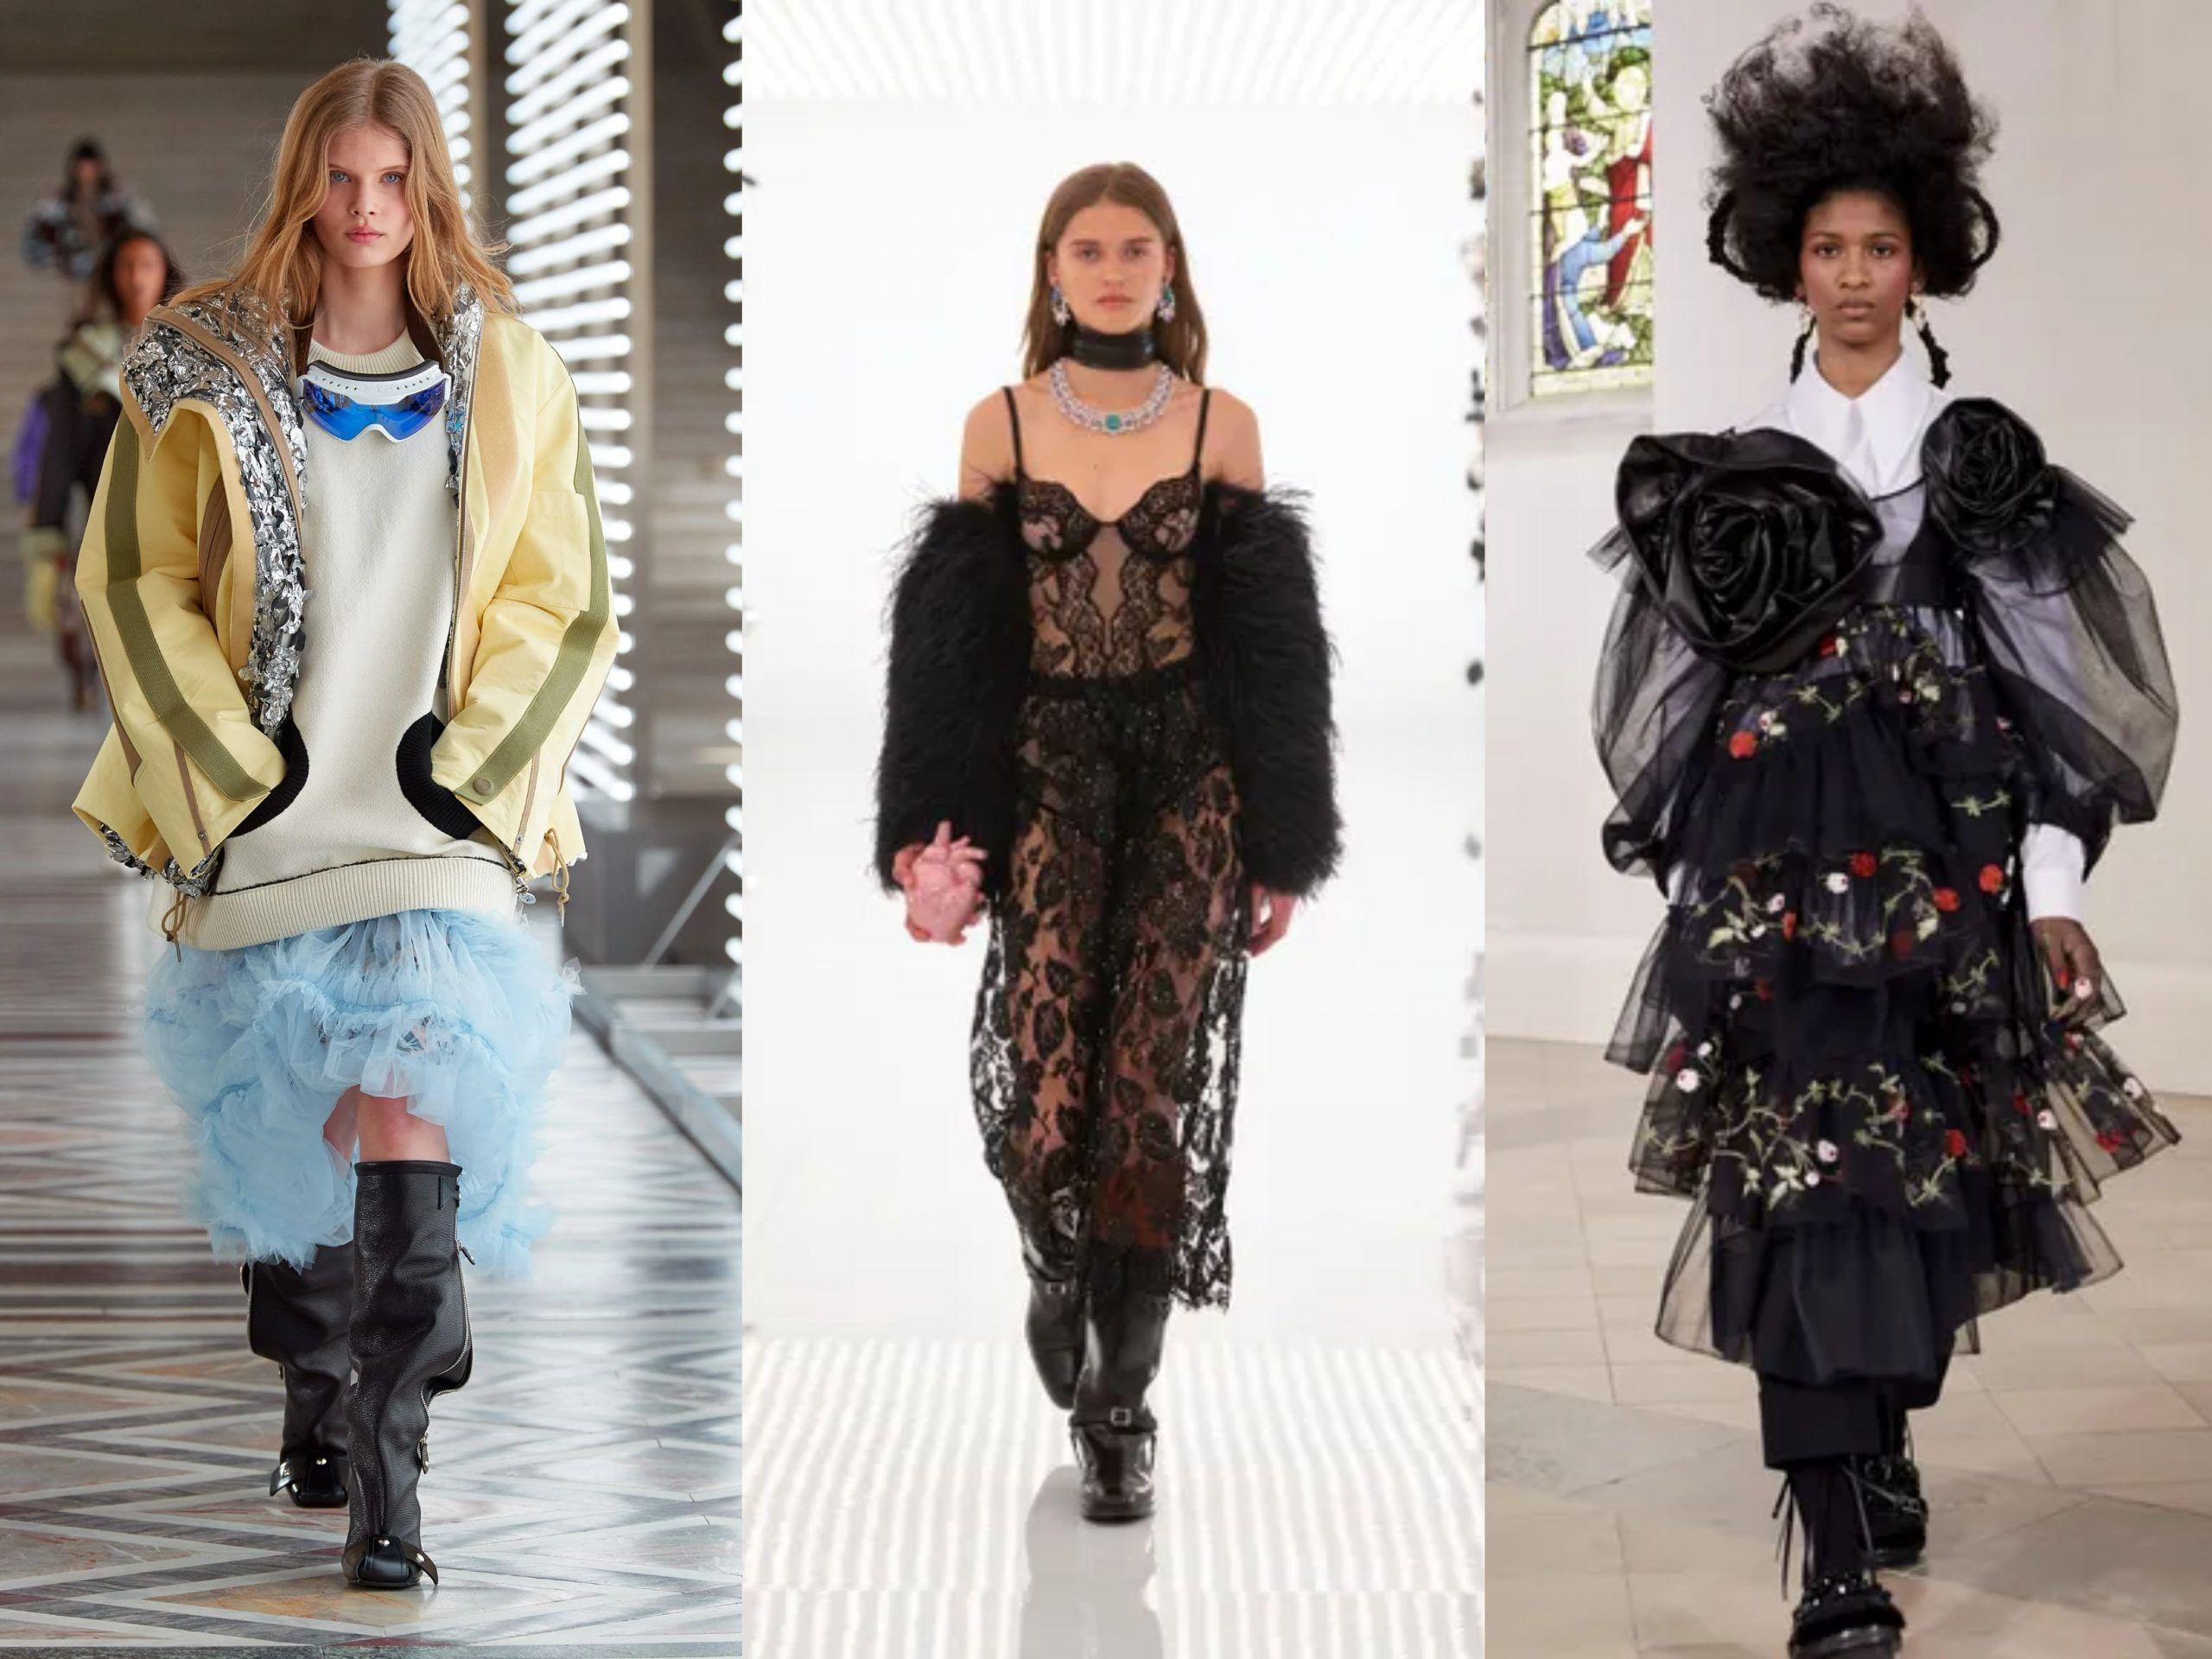 Models wearing AW21 trends sheers and ruffles